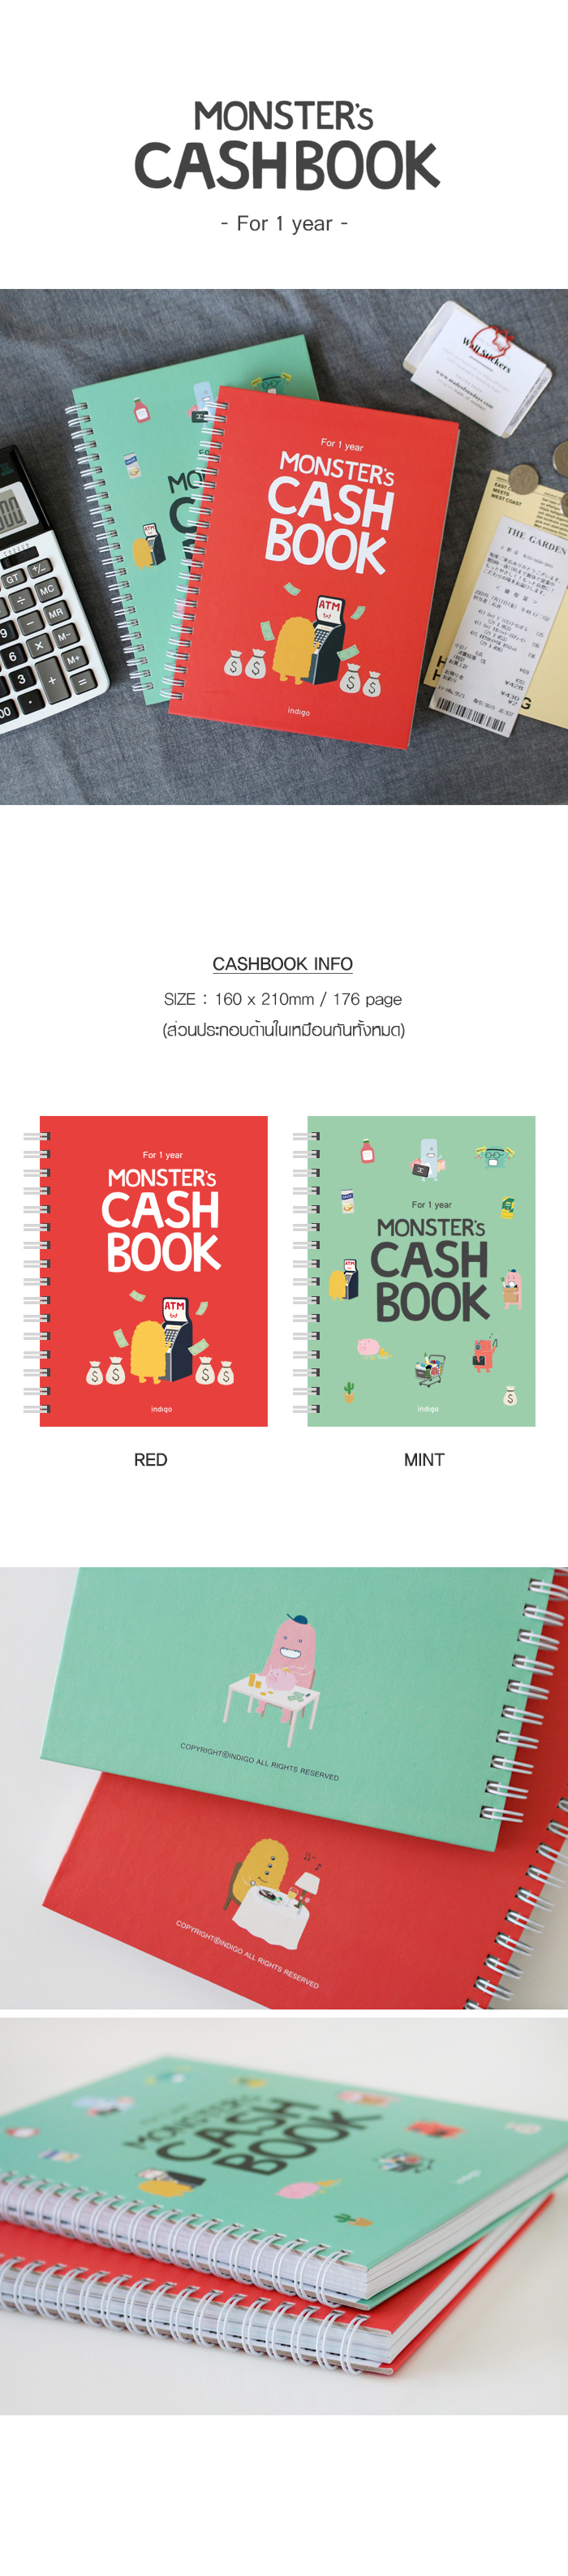 monster-cashbook-6.jpg